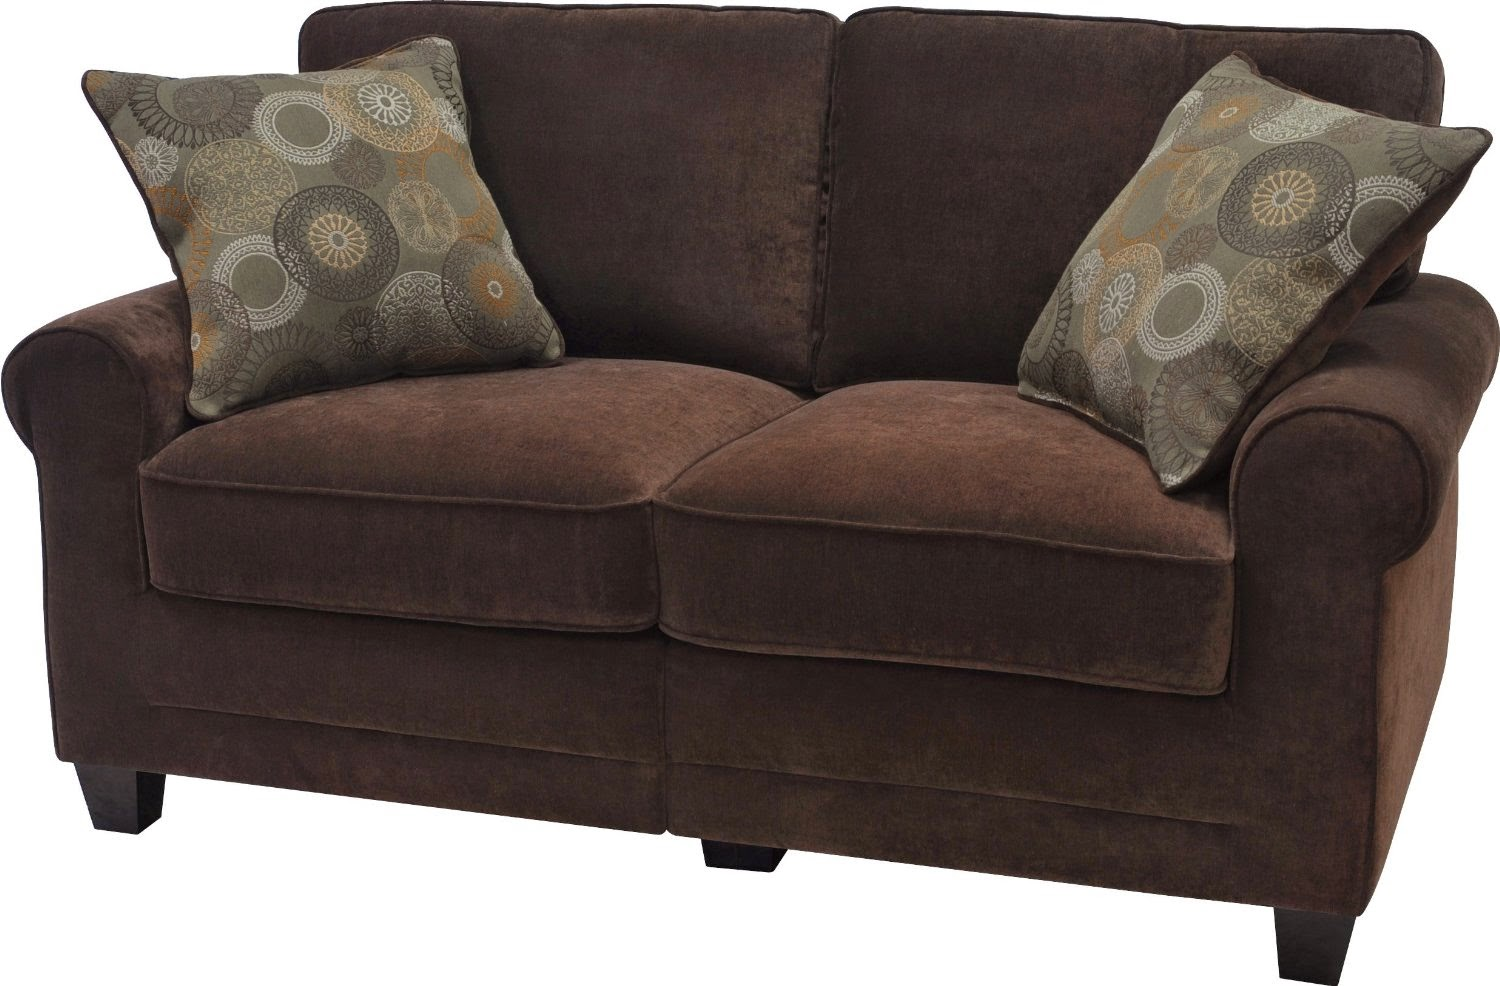 Brown Microfiber Sofa Bed 5ft Wide Reclining Leather